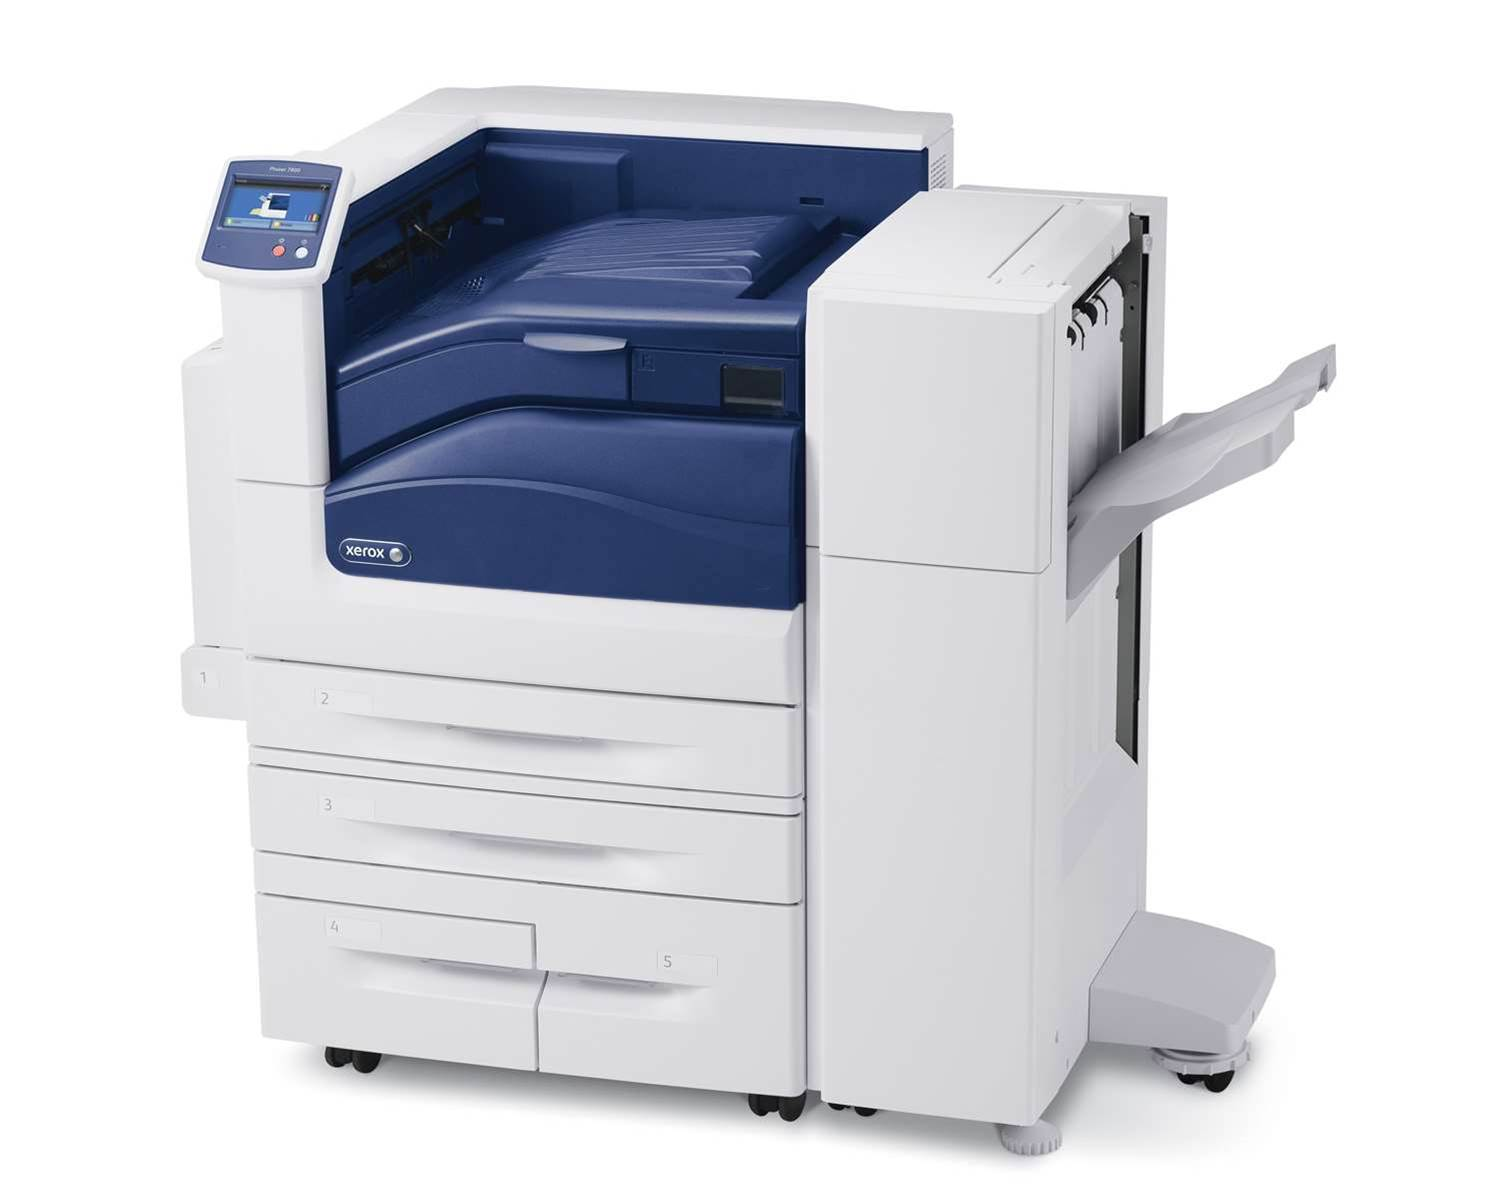 Fuji Xerox will also debut its high-res, A4 Phaser 6700 colour printer targeted at both SMBs and large organisations.